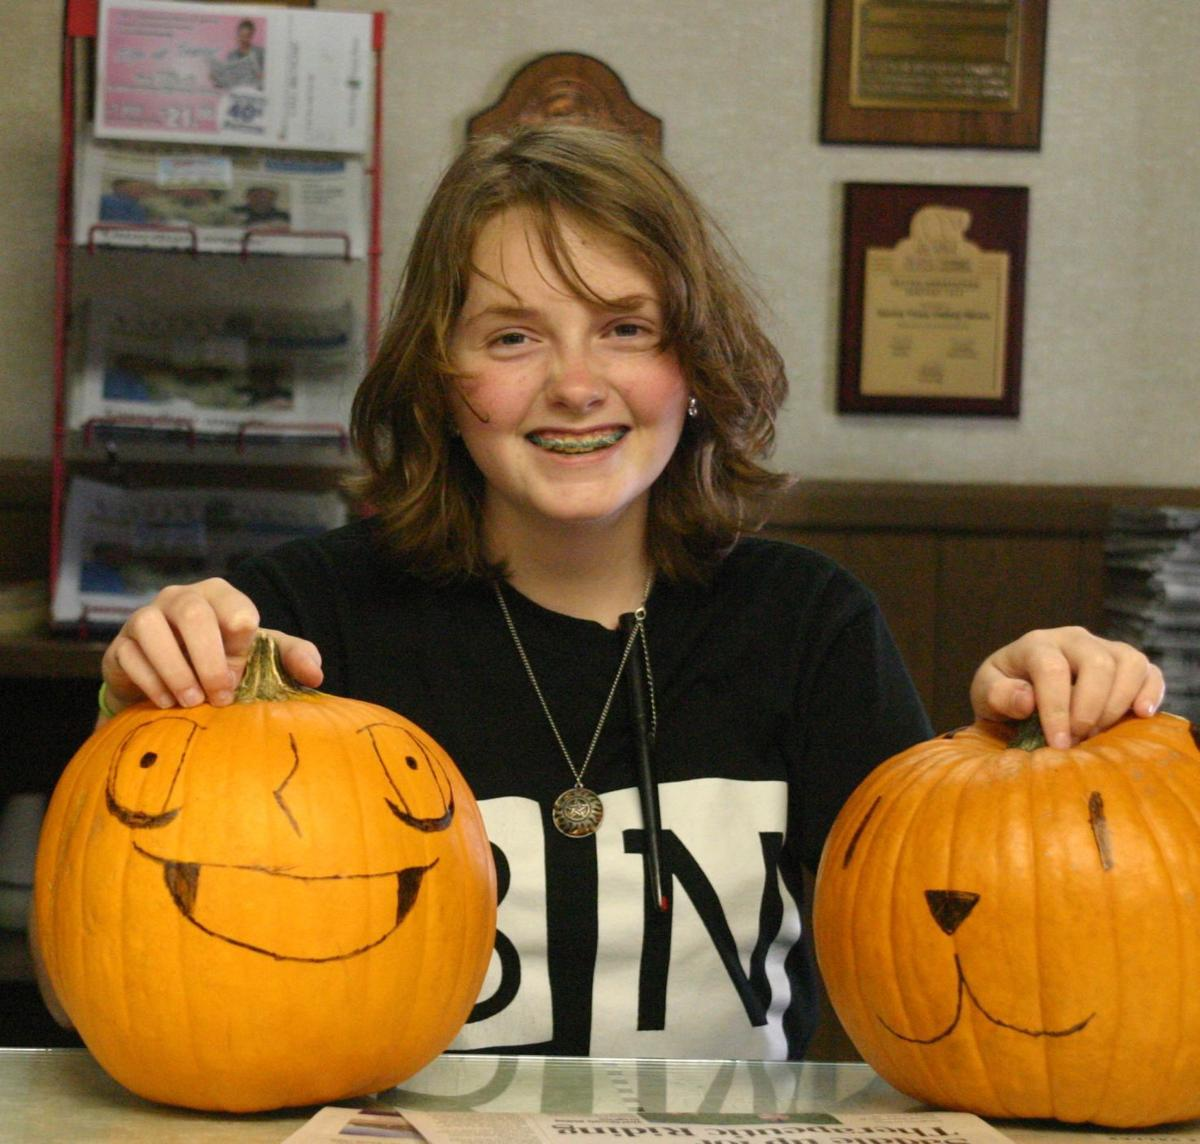 Layla Baker with decorated pumpkins